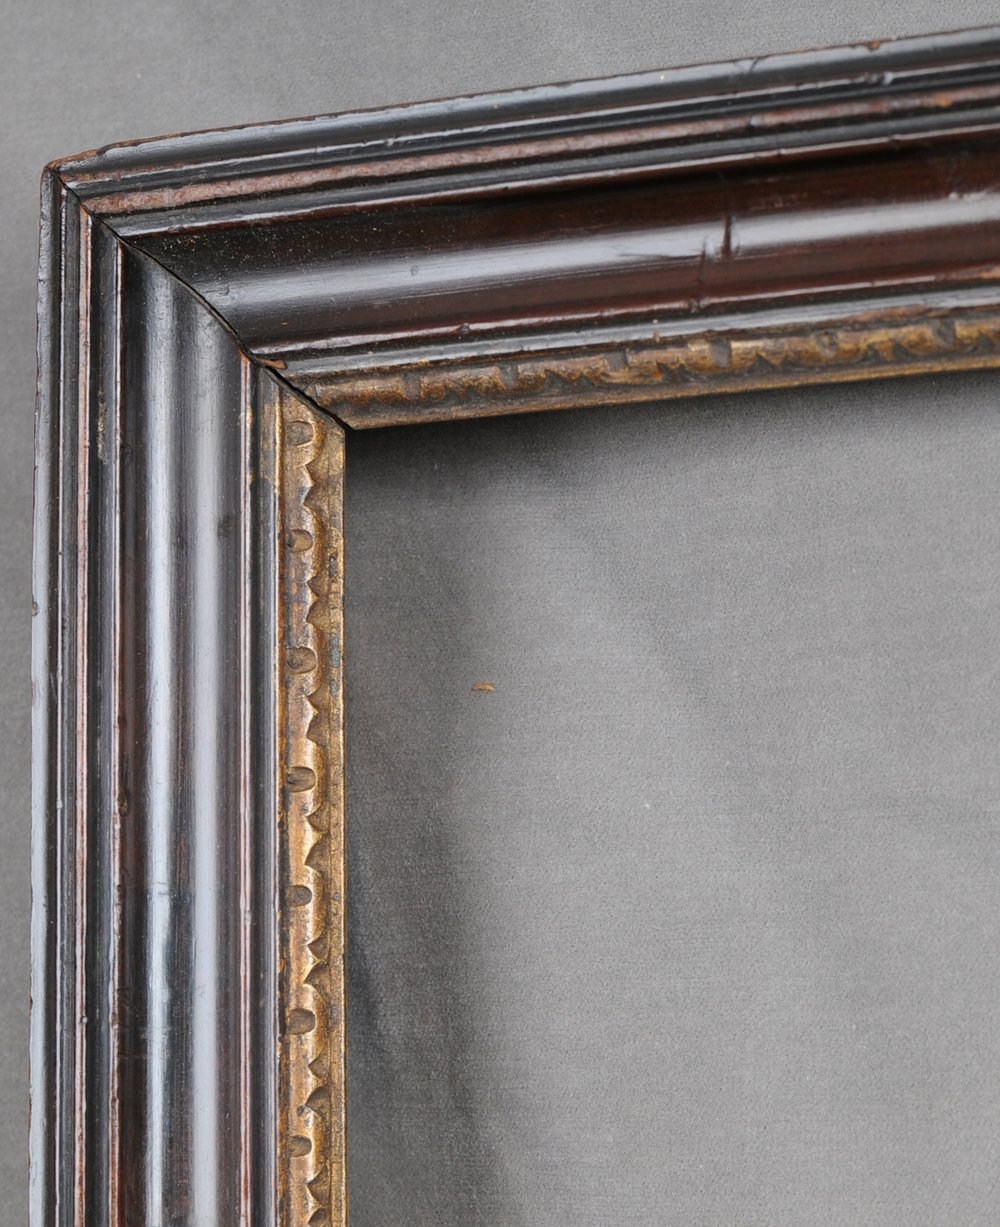 Eighteenth century Darling & Thompson Peartree frame corner detail